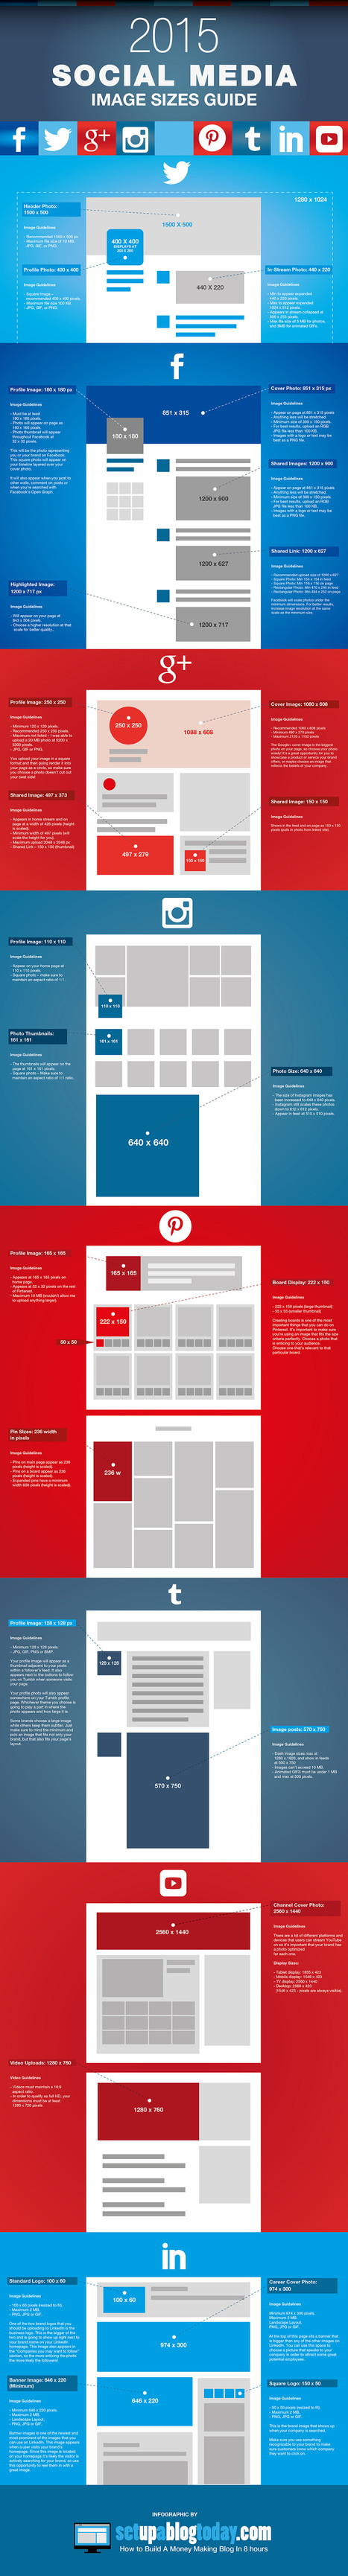 The Complete Guide to Social Media Image Sizes: 2015 (infographic) | visualizing social media | Scoop.it